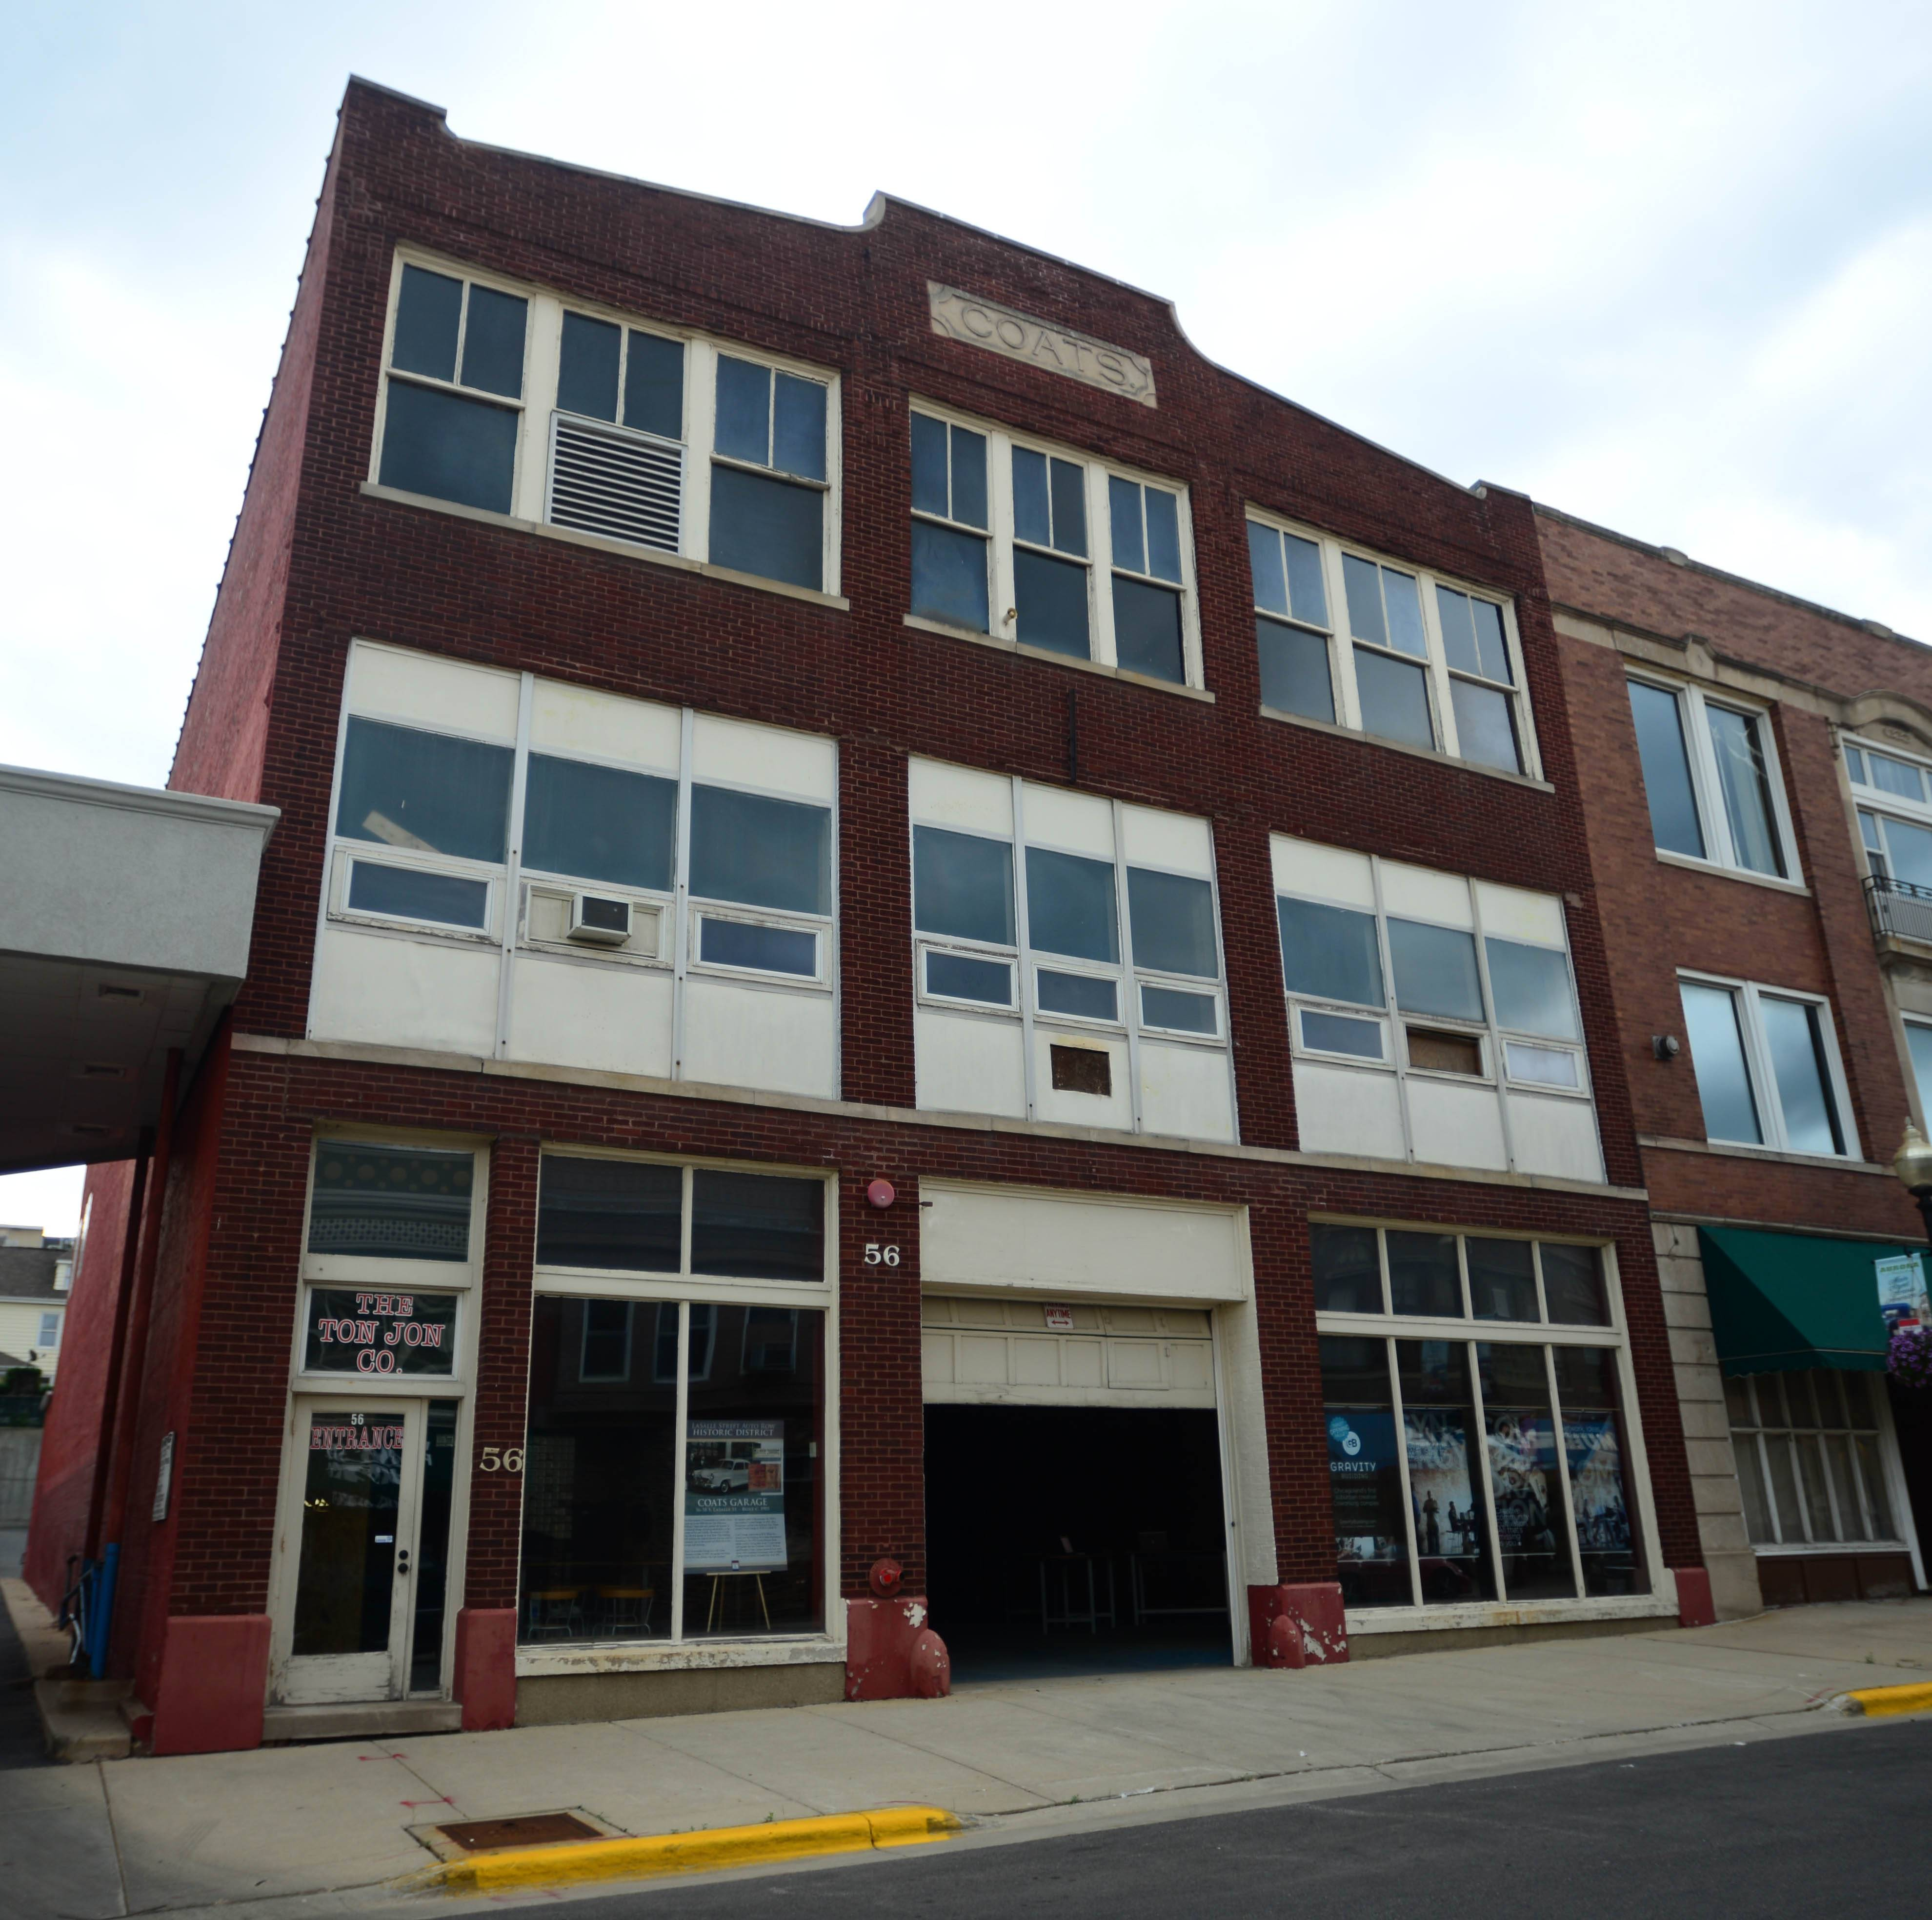 Gravity Building in downtown Aurora is one of a handful of co-working centers and business incubators in development across the suburbs as worker mobility increases.